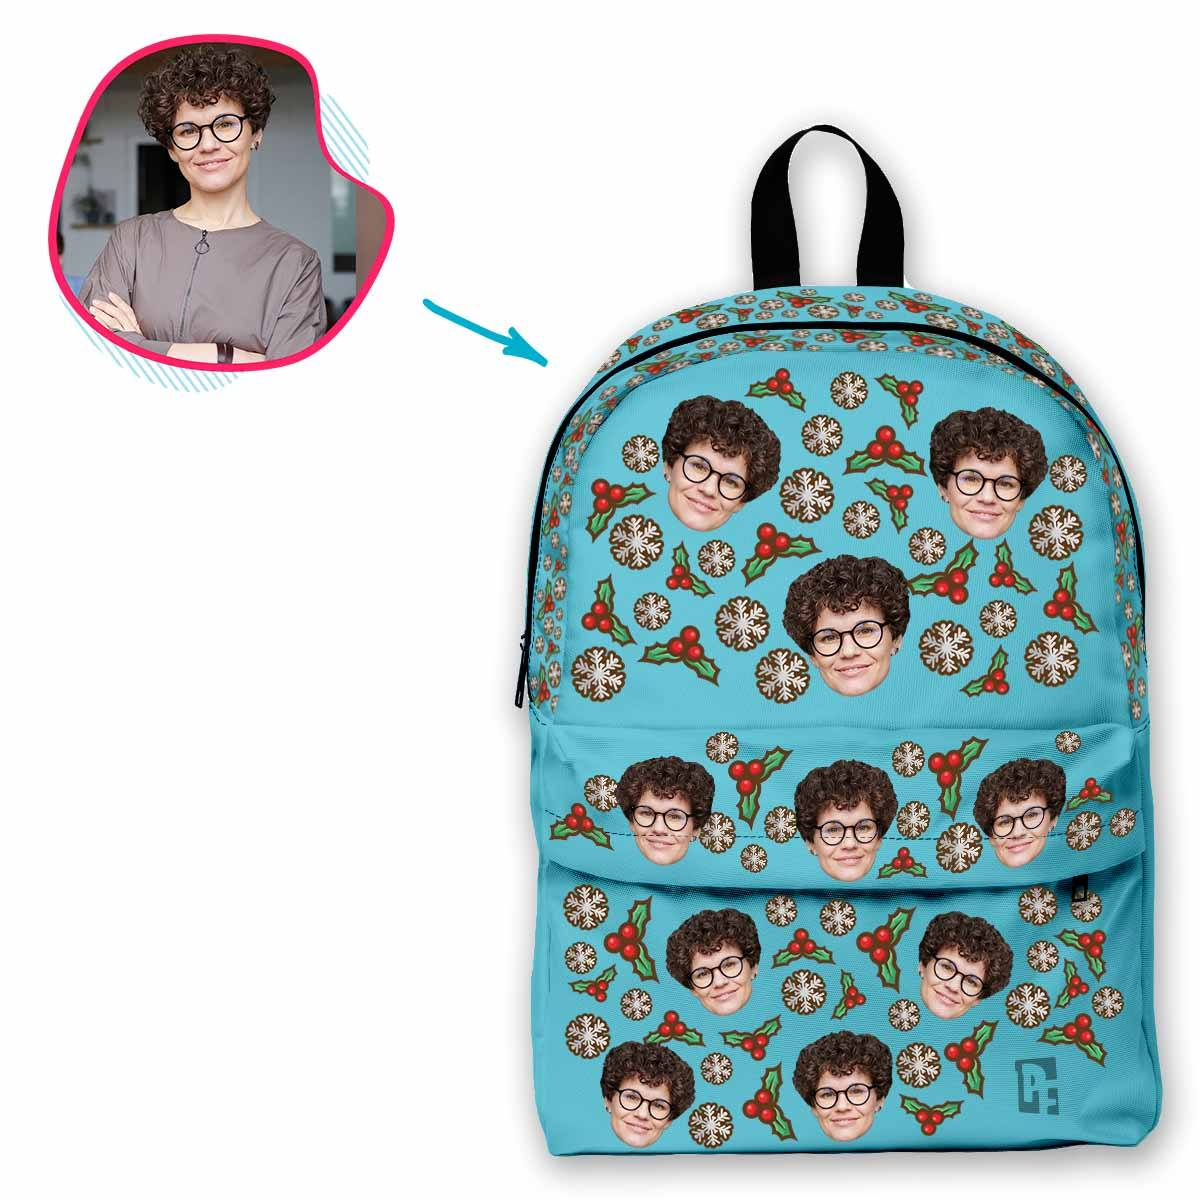 blue Mistletoe classic backpack personalized with photo of face printed on it